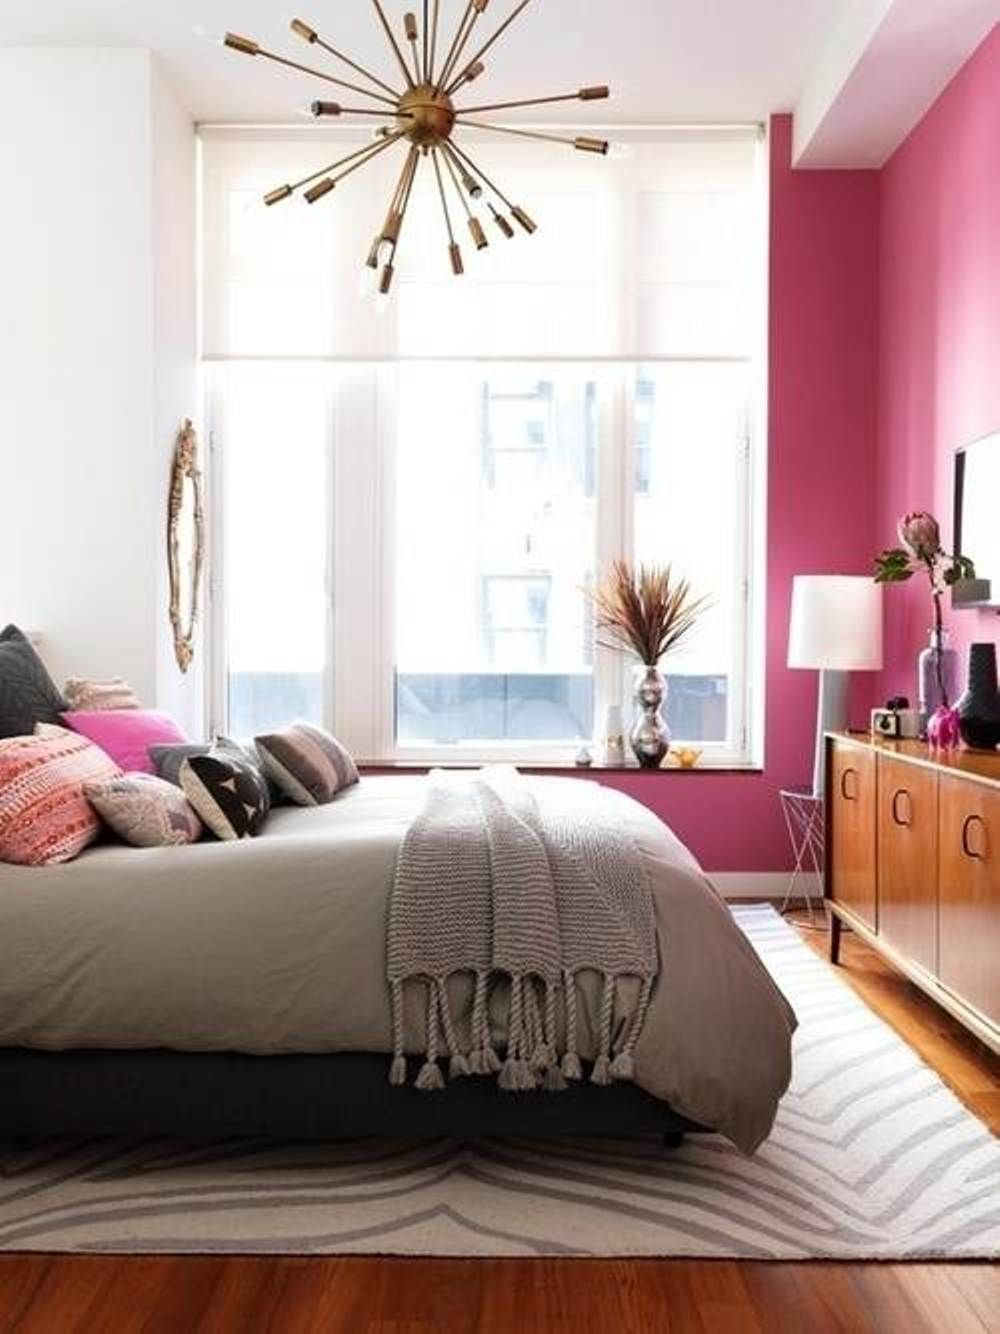 apartment ideas for women. Cool 99  Cute And Cozy Female Bedroom Design Ideas Https Homstuff Com 2017 06 15 Cute Cozy Female Bedroom Design Ideas